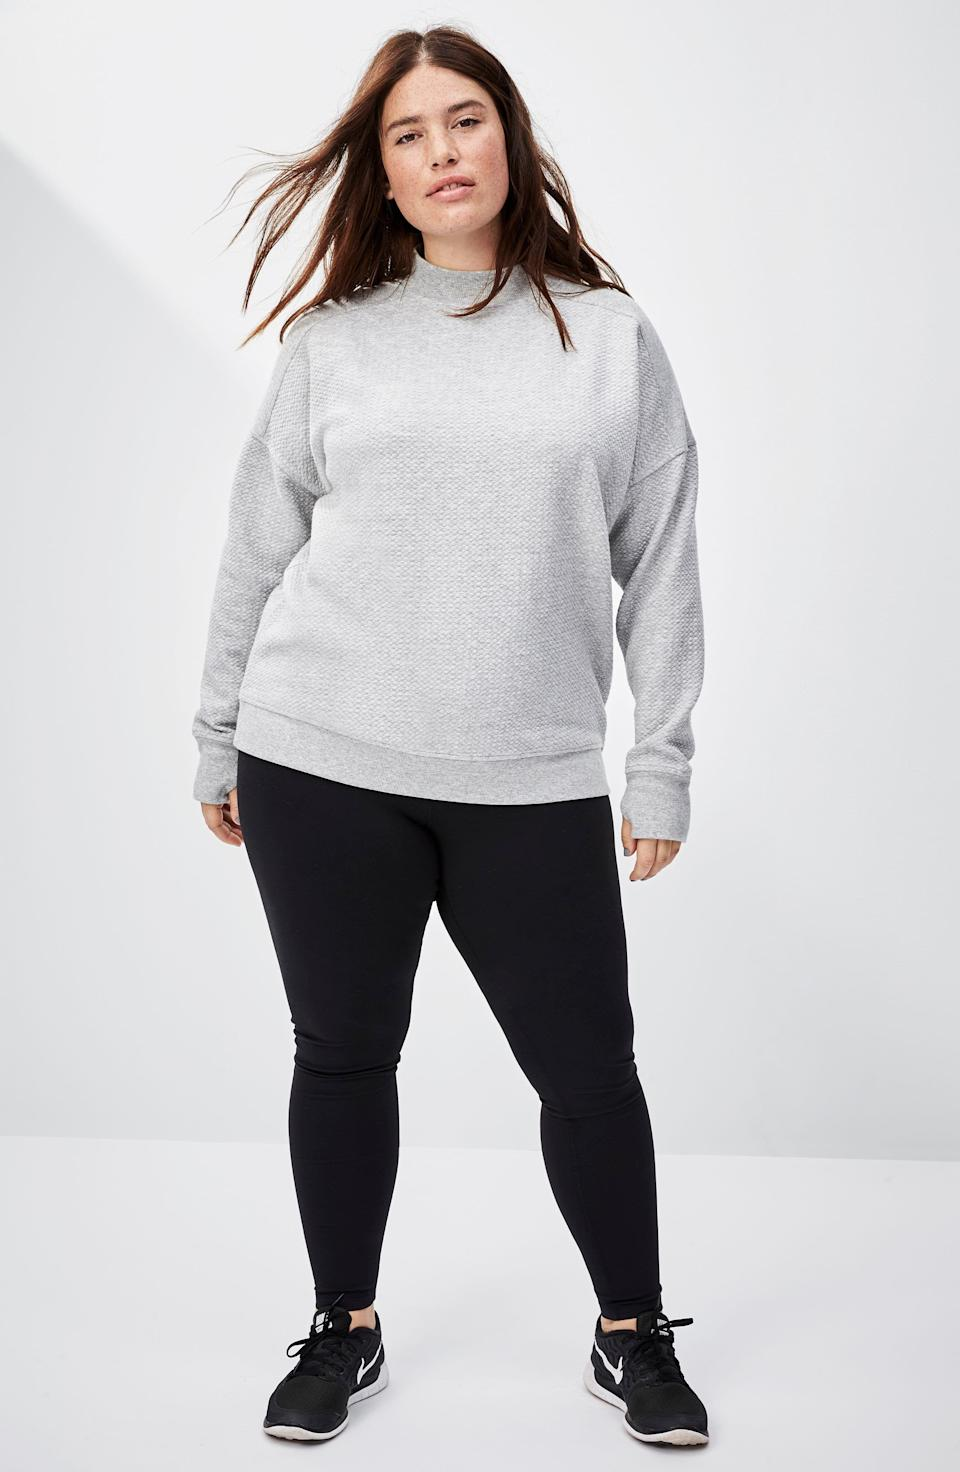 """<p><strong>ZELLA</strong></p><p>nordstrom.com</p><p><strong>$44.25</strong></p><p><a href=""""https://go.redirectingat.com?id=74968X1596630&url=https%3A%2F%2Fwww.nordstrom.com%2Fs%2Fzella-live-in-high-waist-leggings-plus-size%2F4313556&sref=https%3A%2F%2Fwww.goodhousekeeping.com%2Fclothing%2Fg35139110%2Fbest-plus-size-workout-clothes%2F"""" rel=""""nofollow noopener"""" target=""""_blank"""" data-ylk=""""slk:Shop Now"""" class=""""link rapid-noclick-resp"""">Shop Now</a></p><p>The high-waist, flattering cut and <strong>stretchy, yet opaque material</strong> makes these leggings popular among online reviewers. """"These leggings help hold everything in place and never roll down even when working out,"""" says one reviewer. </p>"""